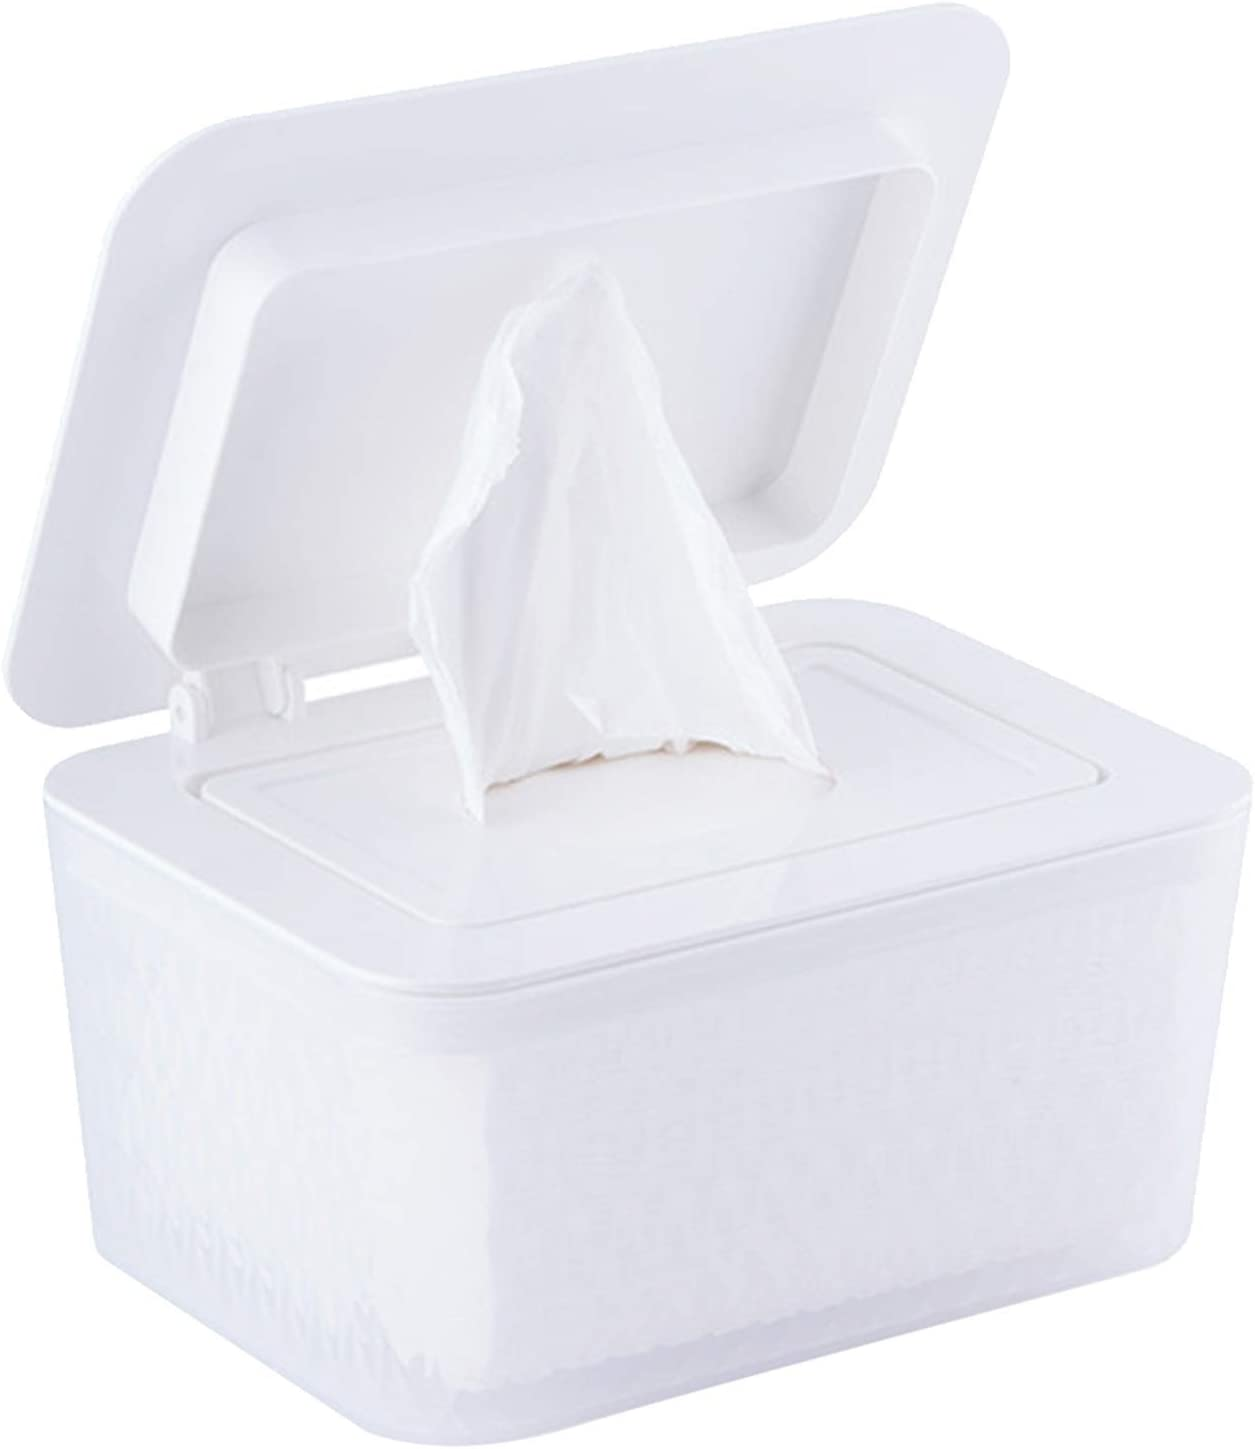 Tissues Box Wet Wipes Dispenser With low-pricing Dustproof service Lid Tissue Holder